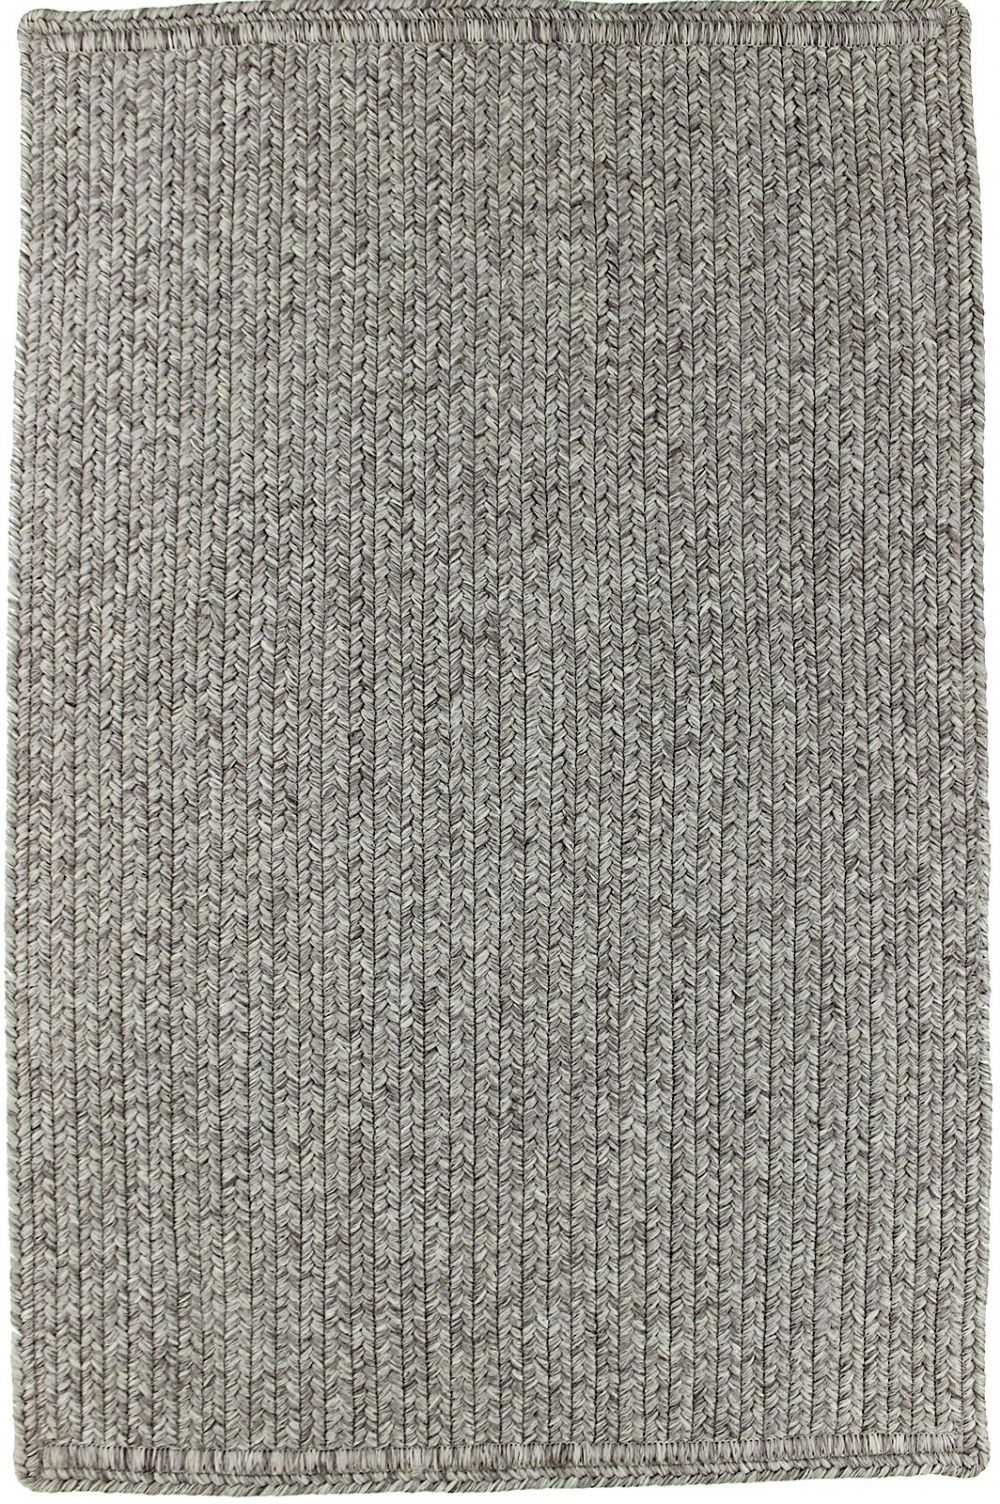 homespice decor quick silver braided area rug collection